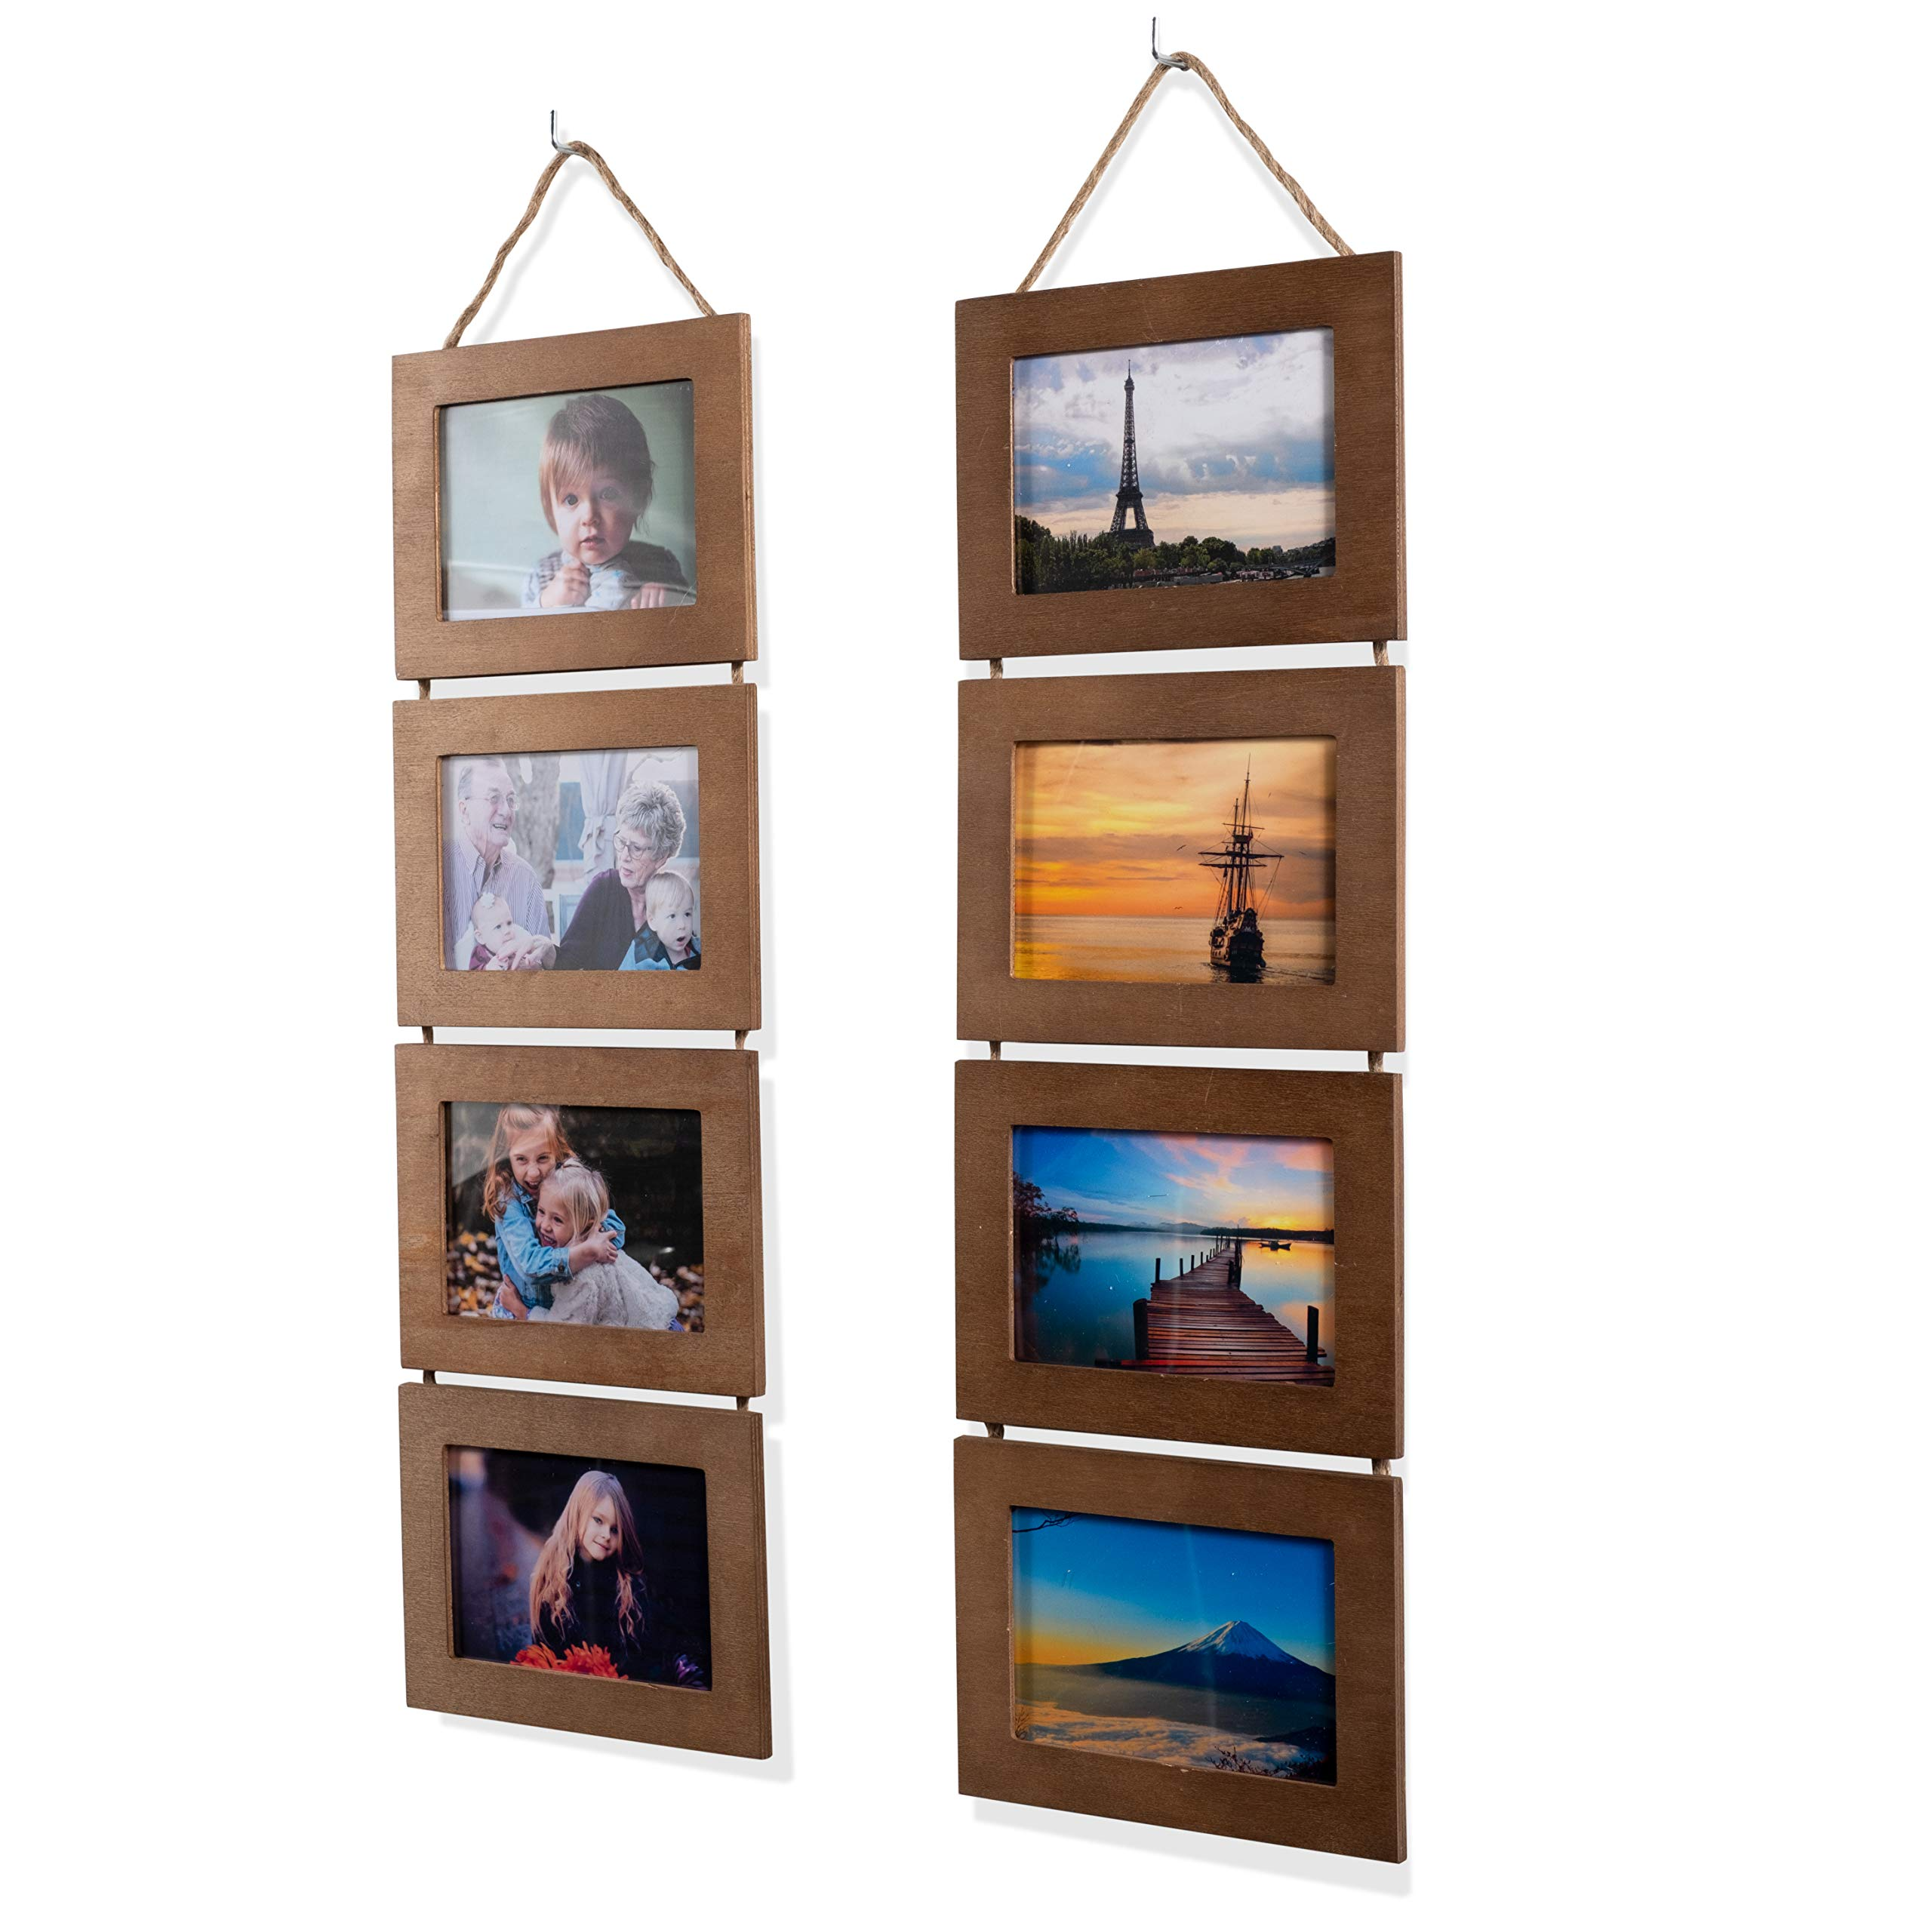 Wallniture Wood Photo Collage Picture Frame Walnut Finish Total 8 Opening for 4x6 Inch Photos Wall Mountable Ready to Hang Vertical Gallery Décor by Wallniture